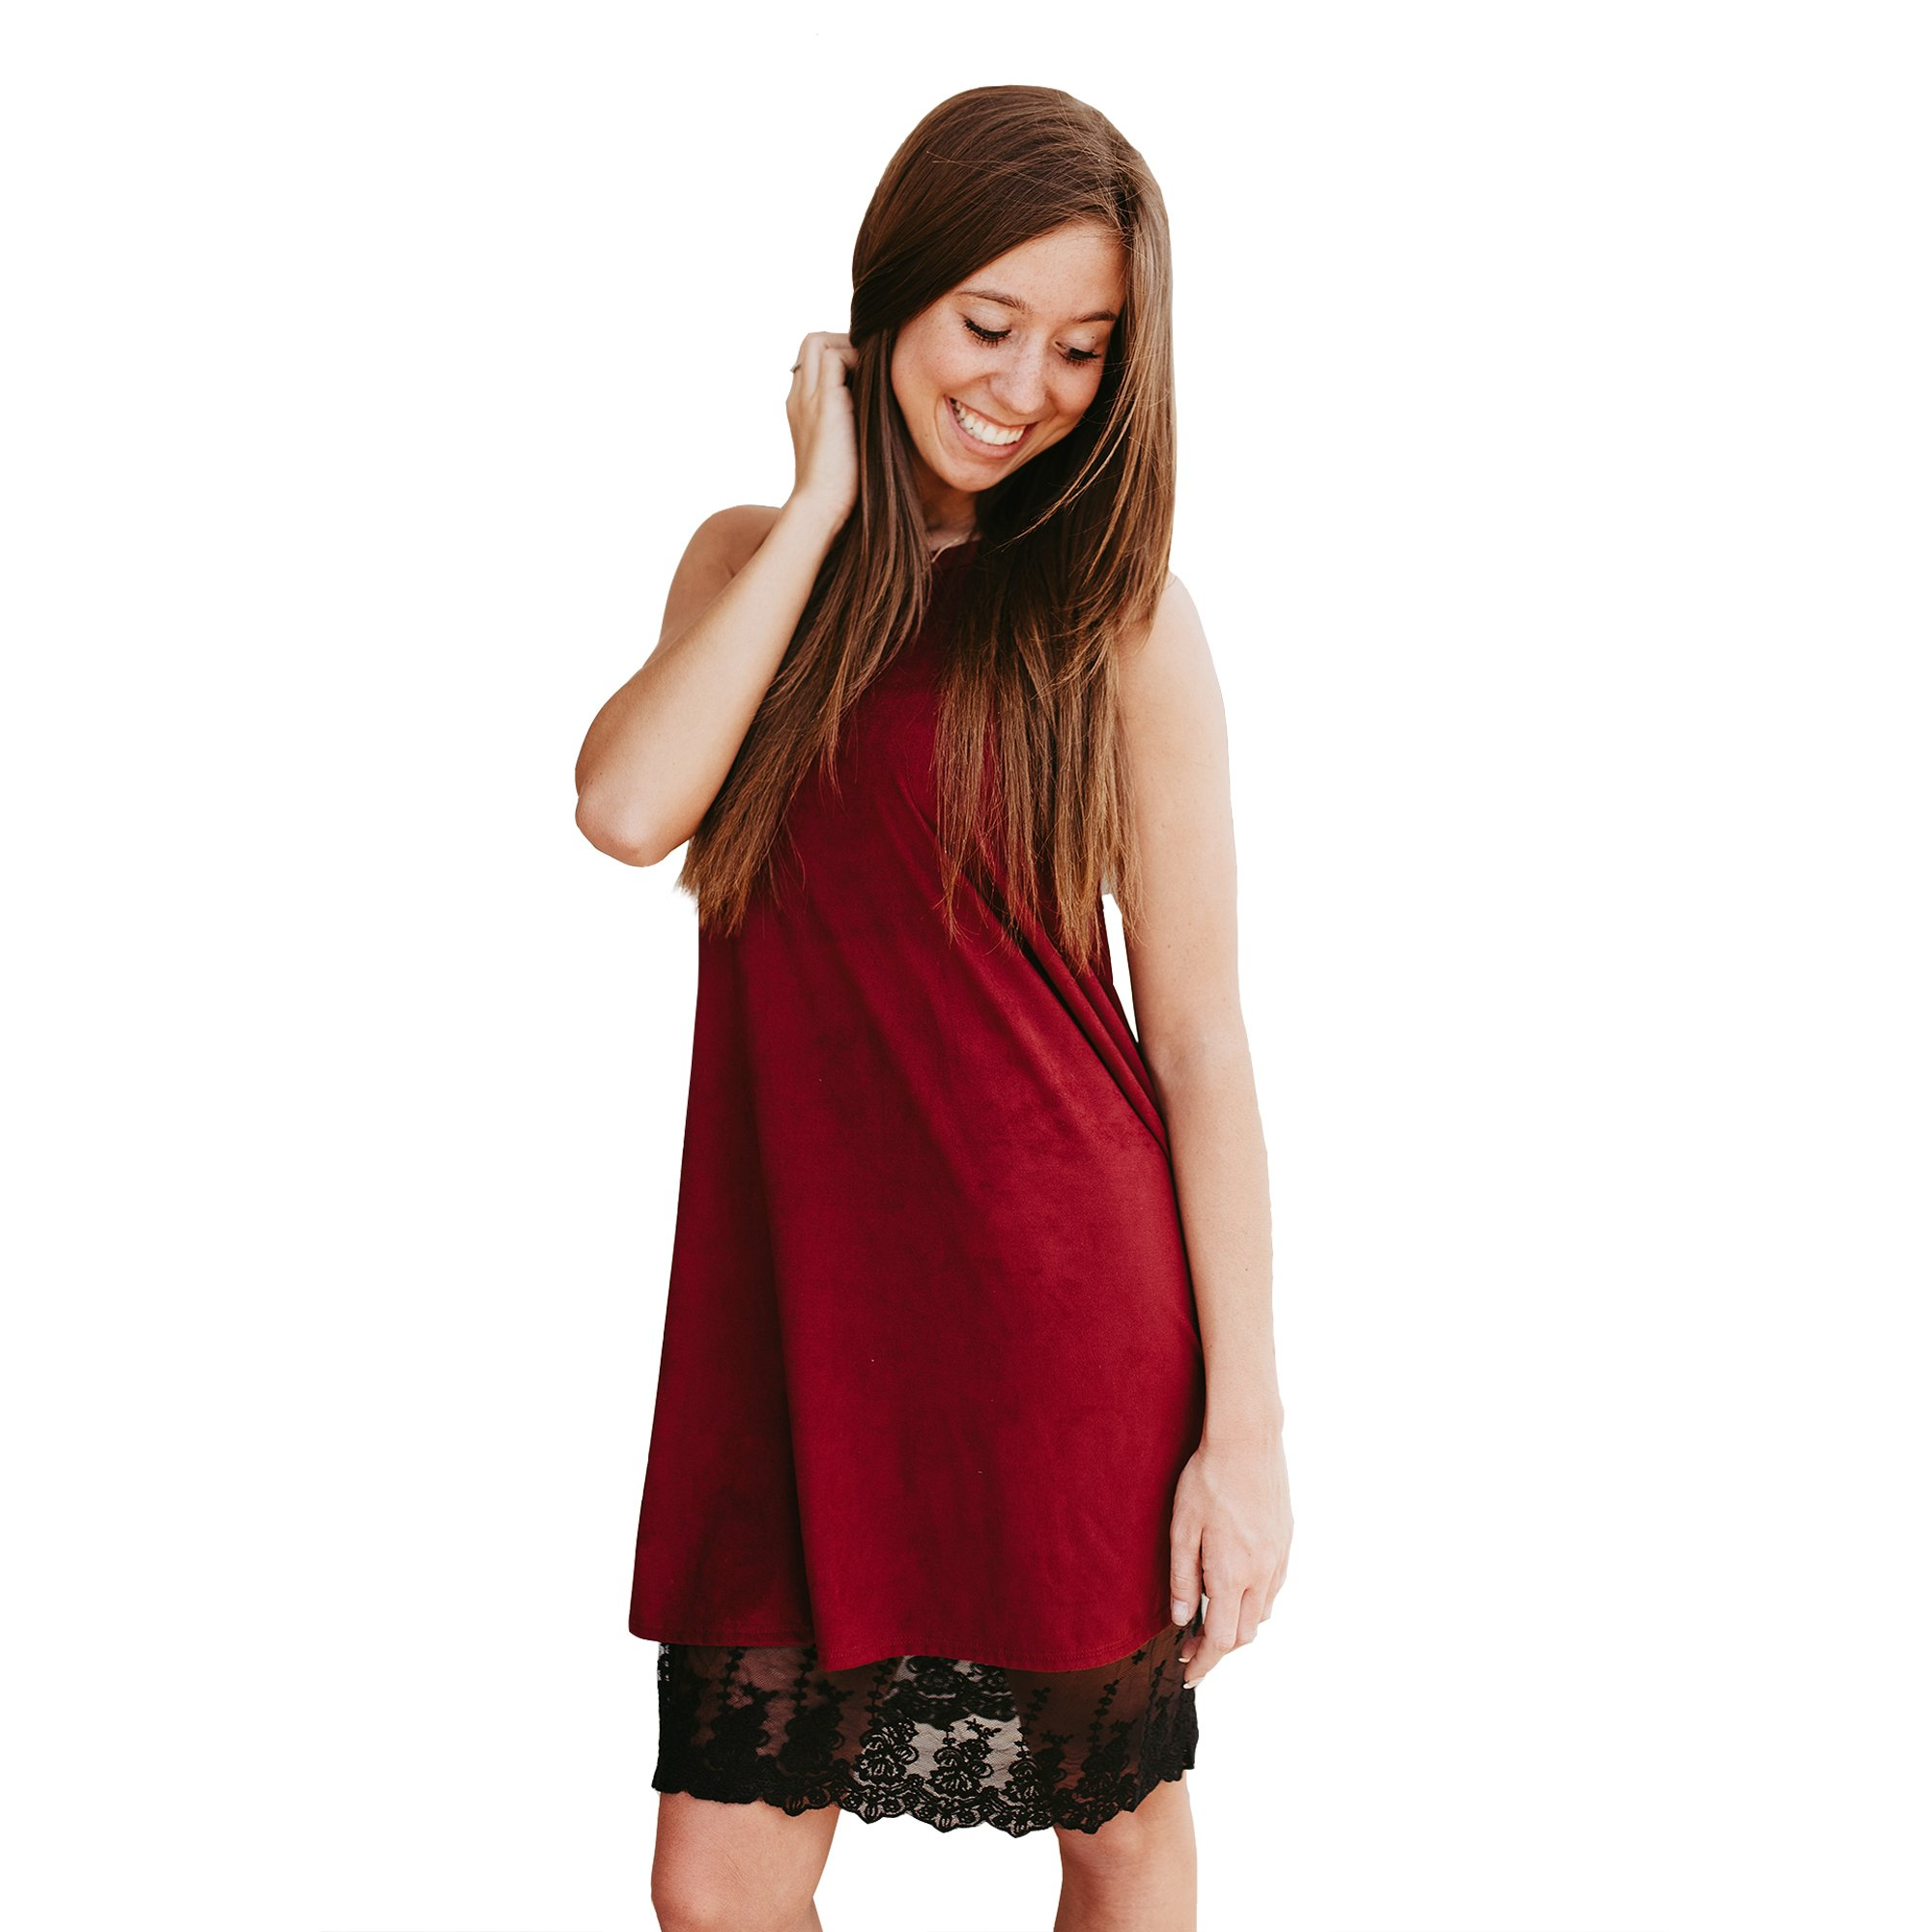 Boot Cuffs & Socks Dress Skirt Extender with Lace, Cotton Knit Underskirt for Women - Plus Size Available (XXX-Large, Black)